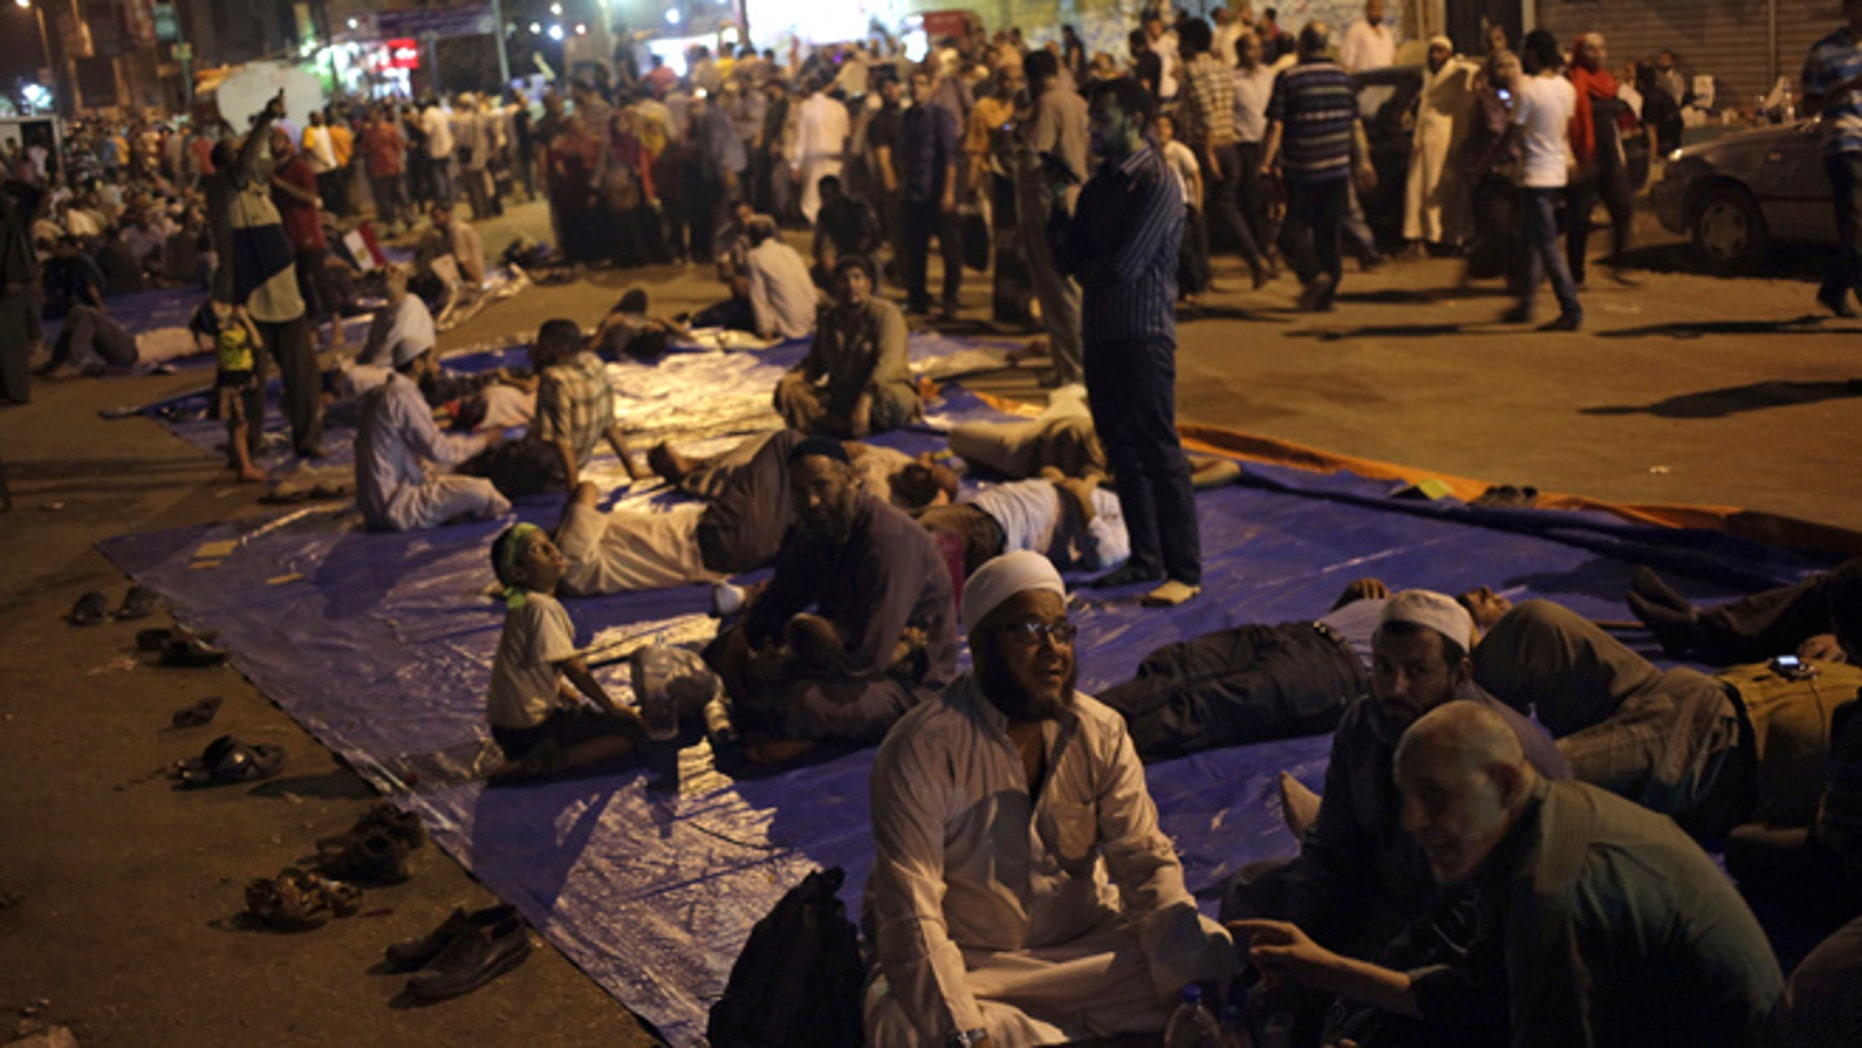 Aug. 2, 2013: Supporters of Egypt's ousted President Mohammed Morsi sit on a street as they protest near Cairo airport in Cairo, Egypt.